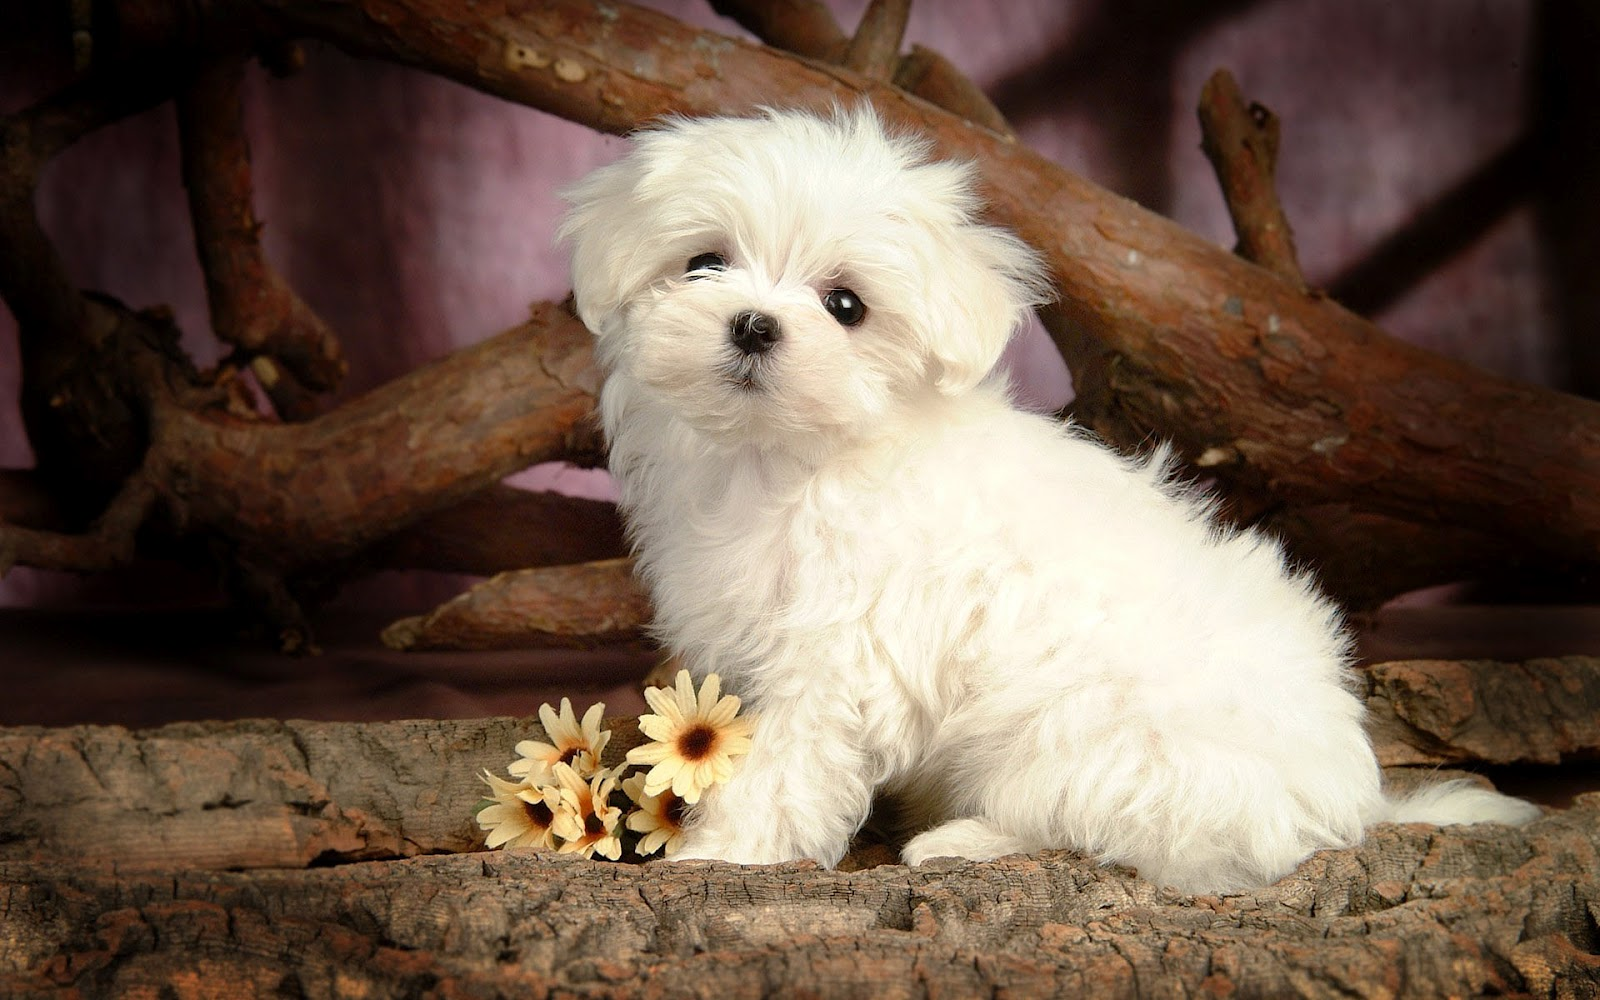 animals dog wallpaper free - photo #36